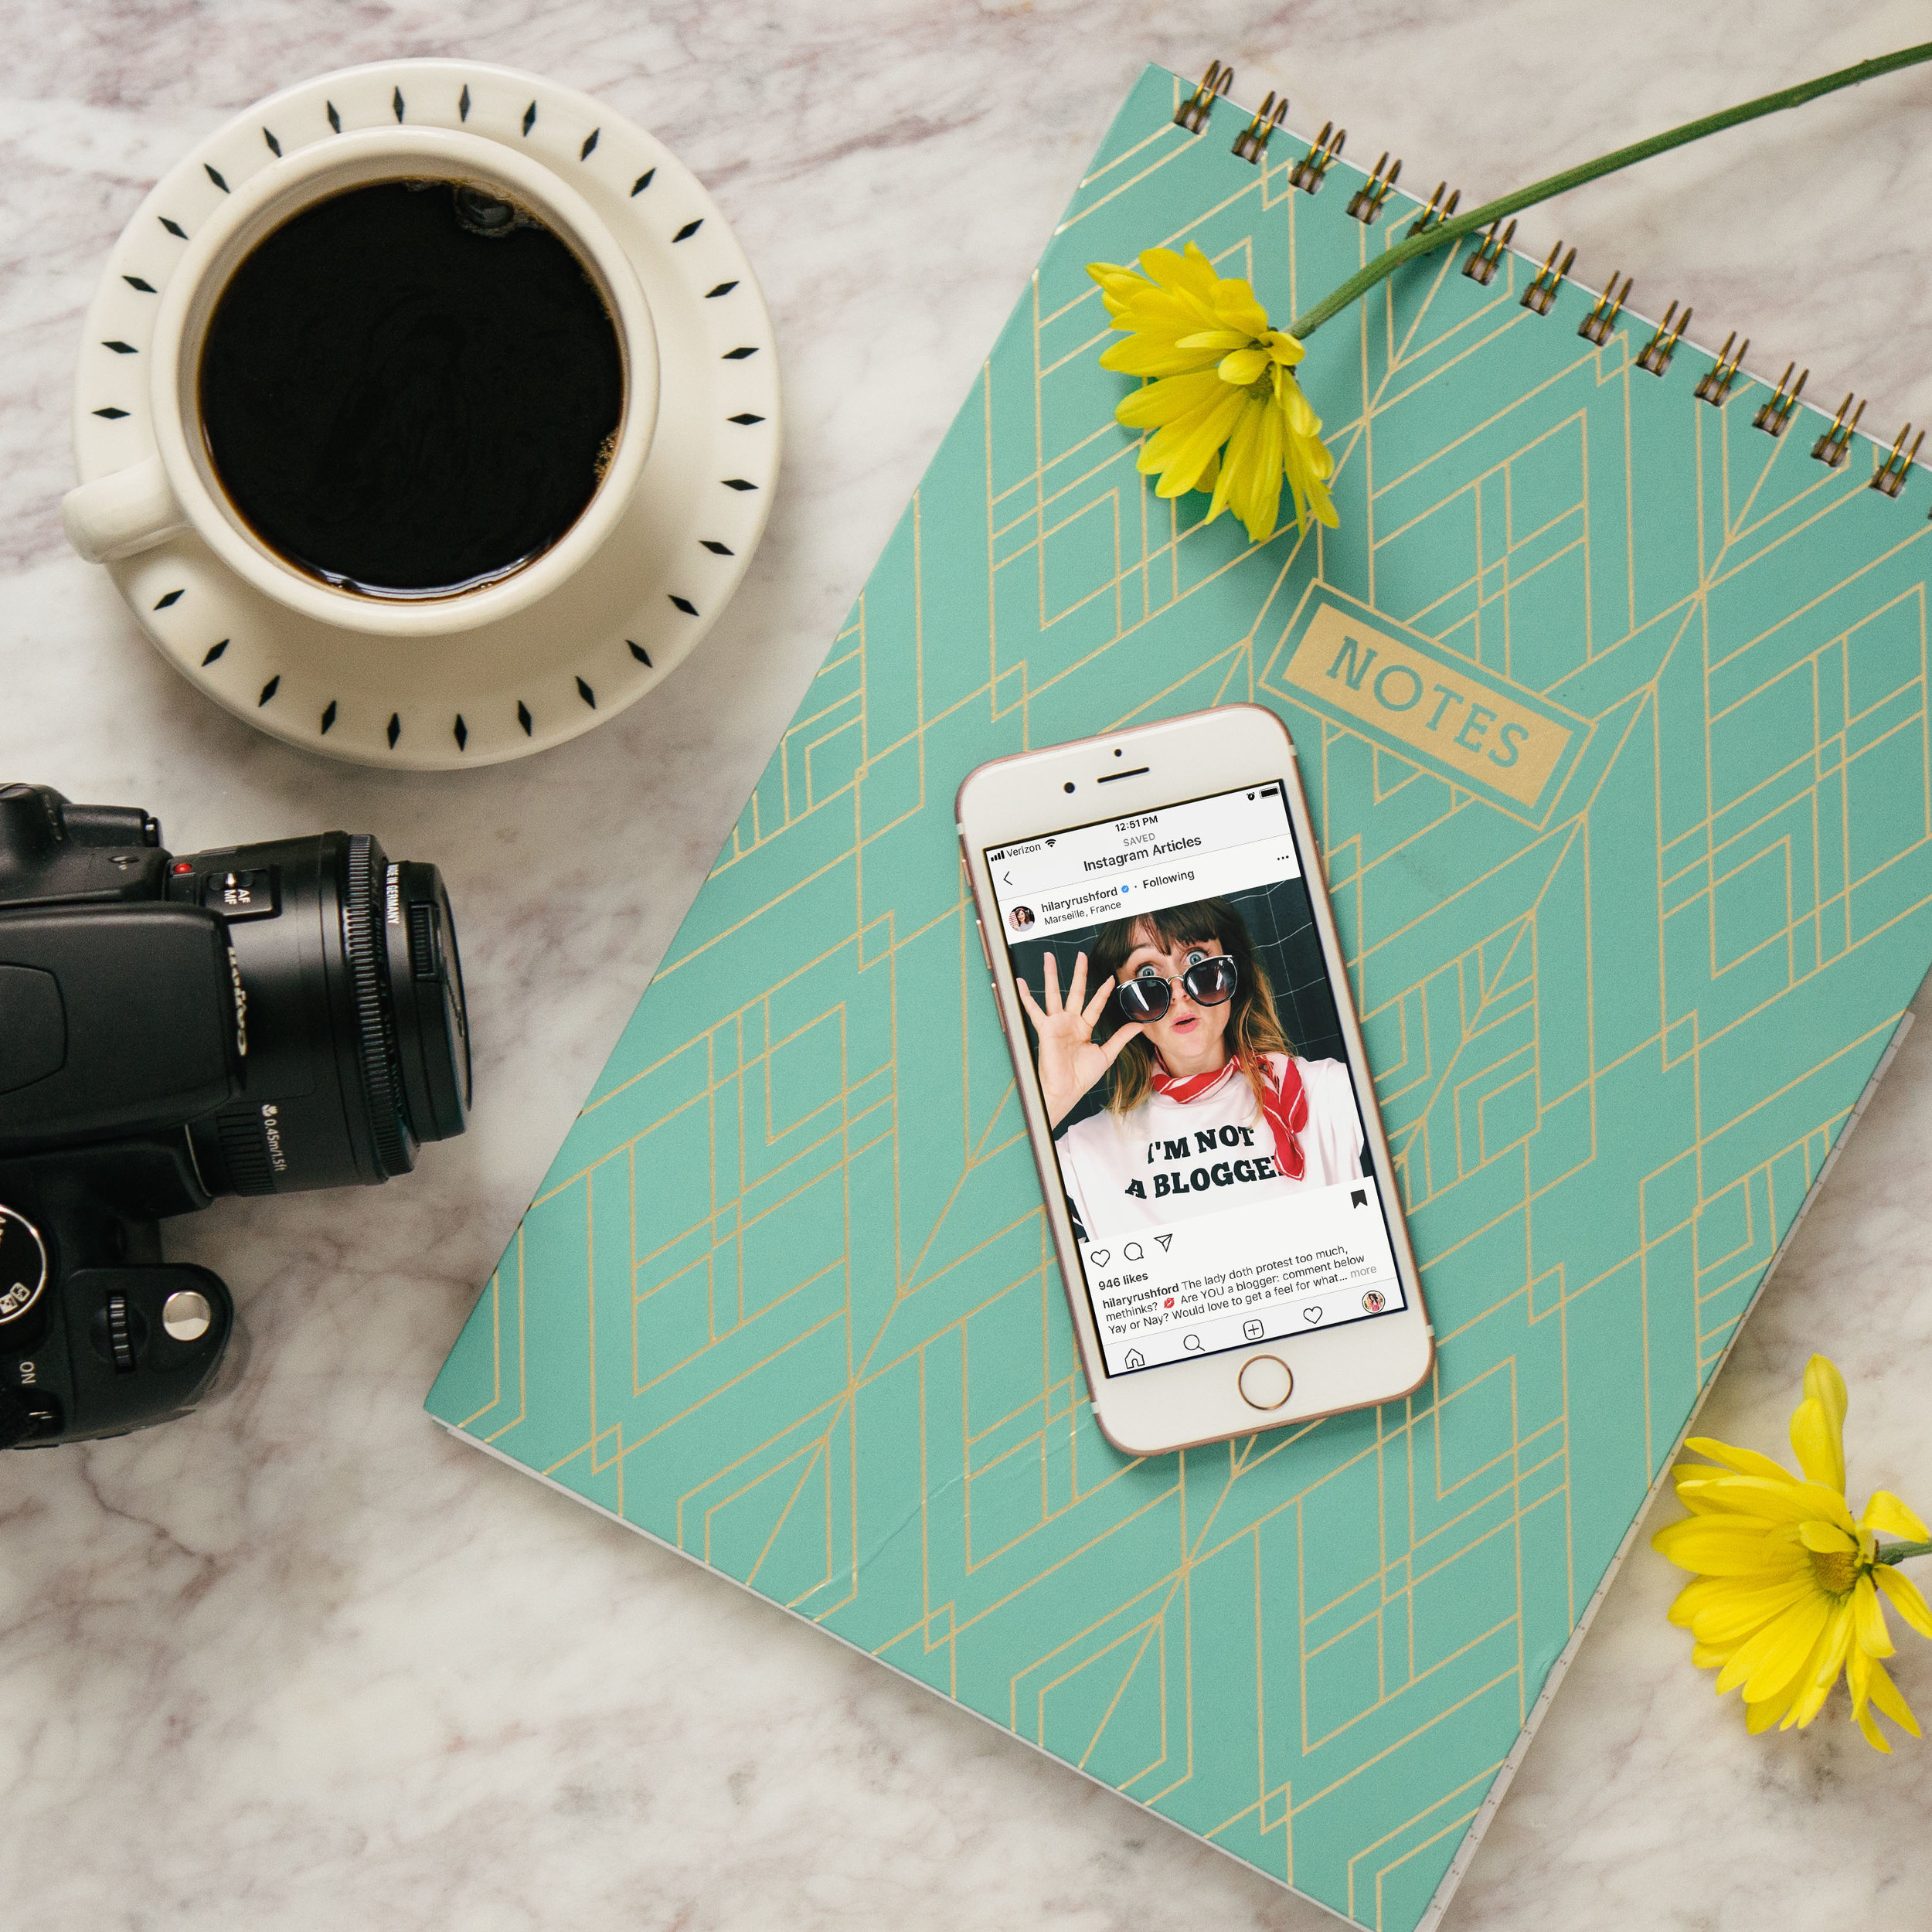 7 Ways to Get Out in Front of the Camera for the Shy & Self-Conscious | Photo poses and photo ideas for introverts | Alexis the Greek blog